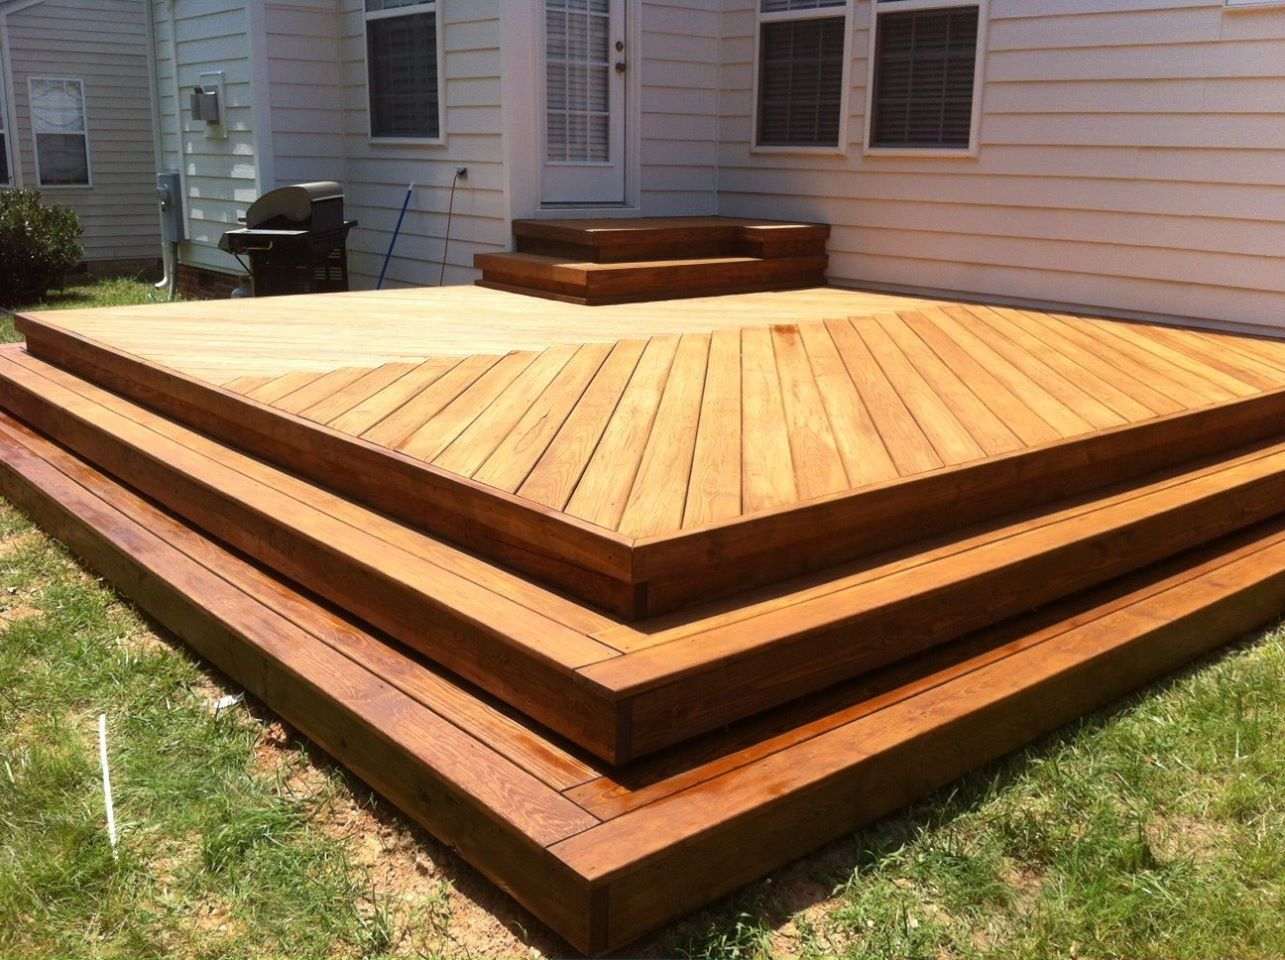 New deck with herringbone decking pattern No